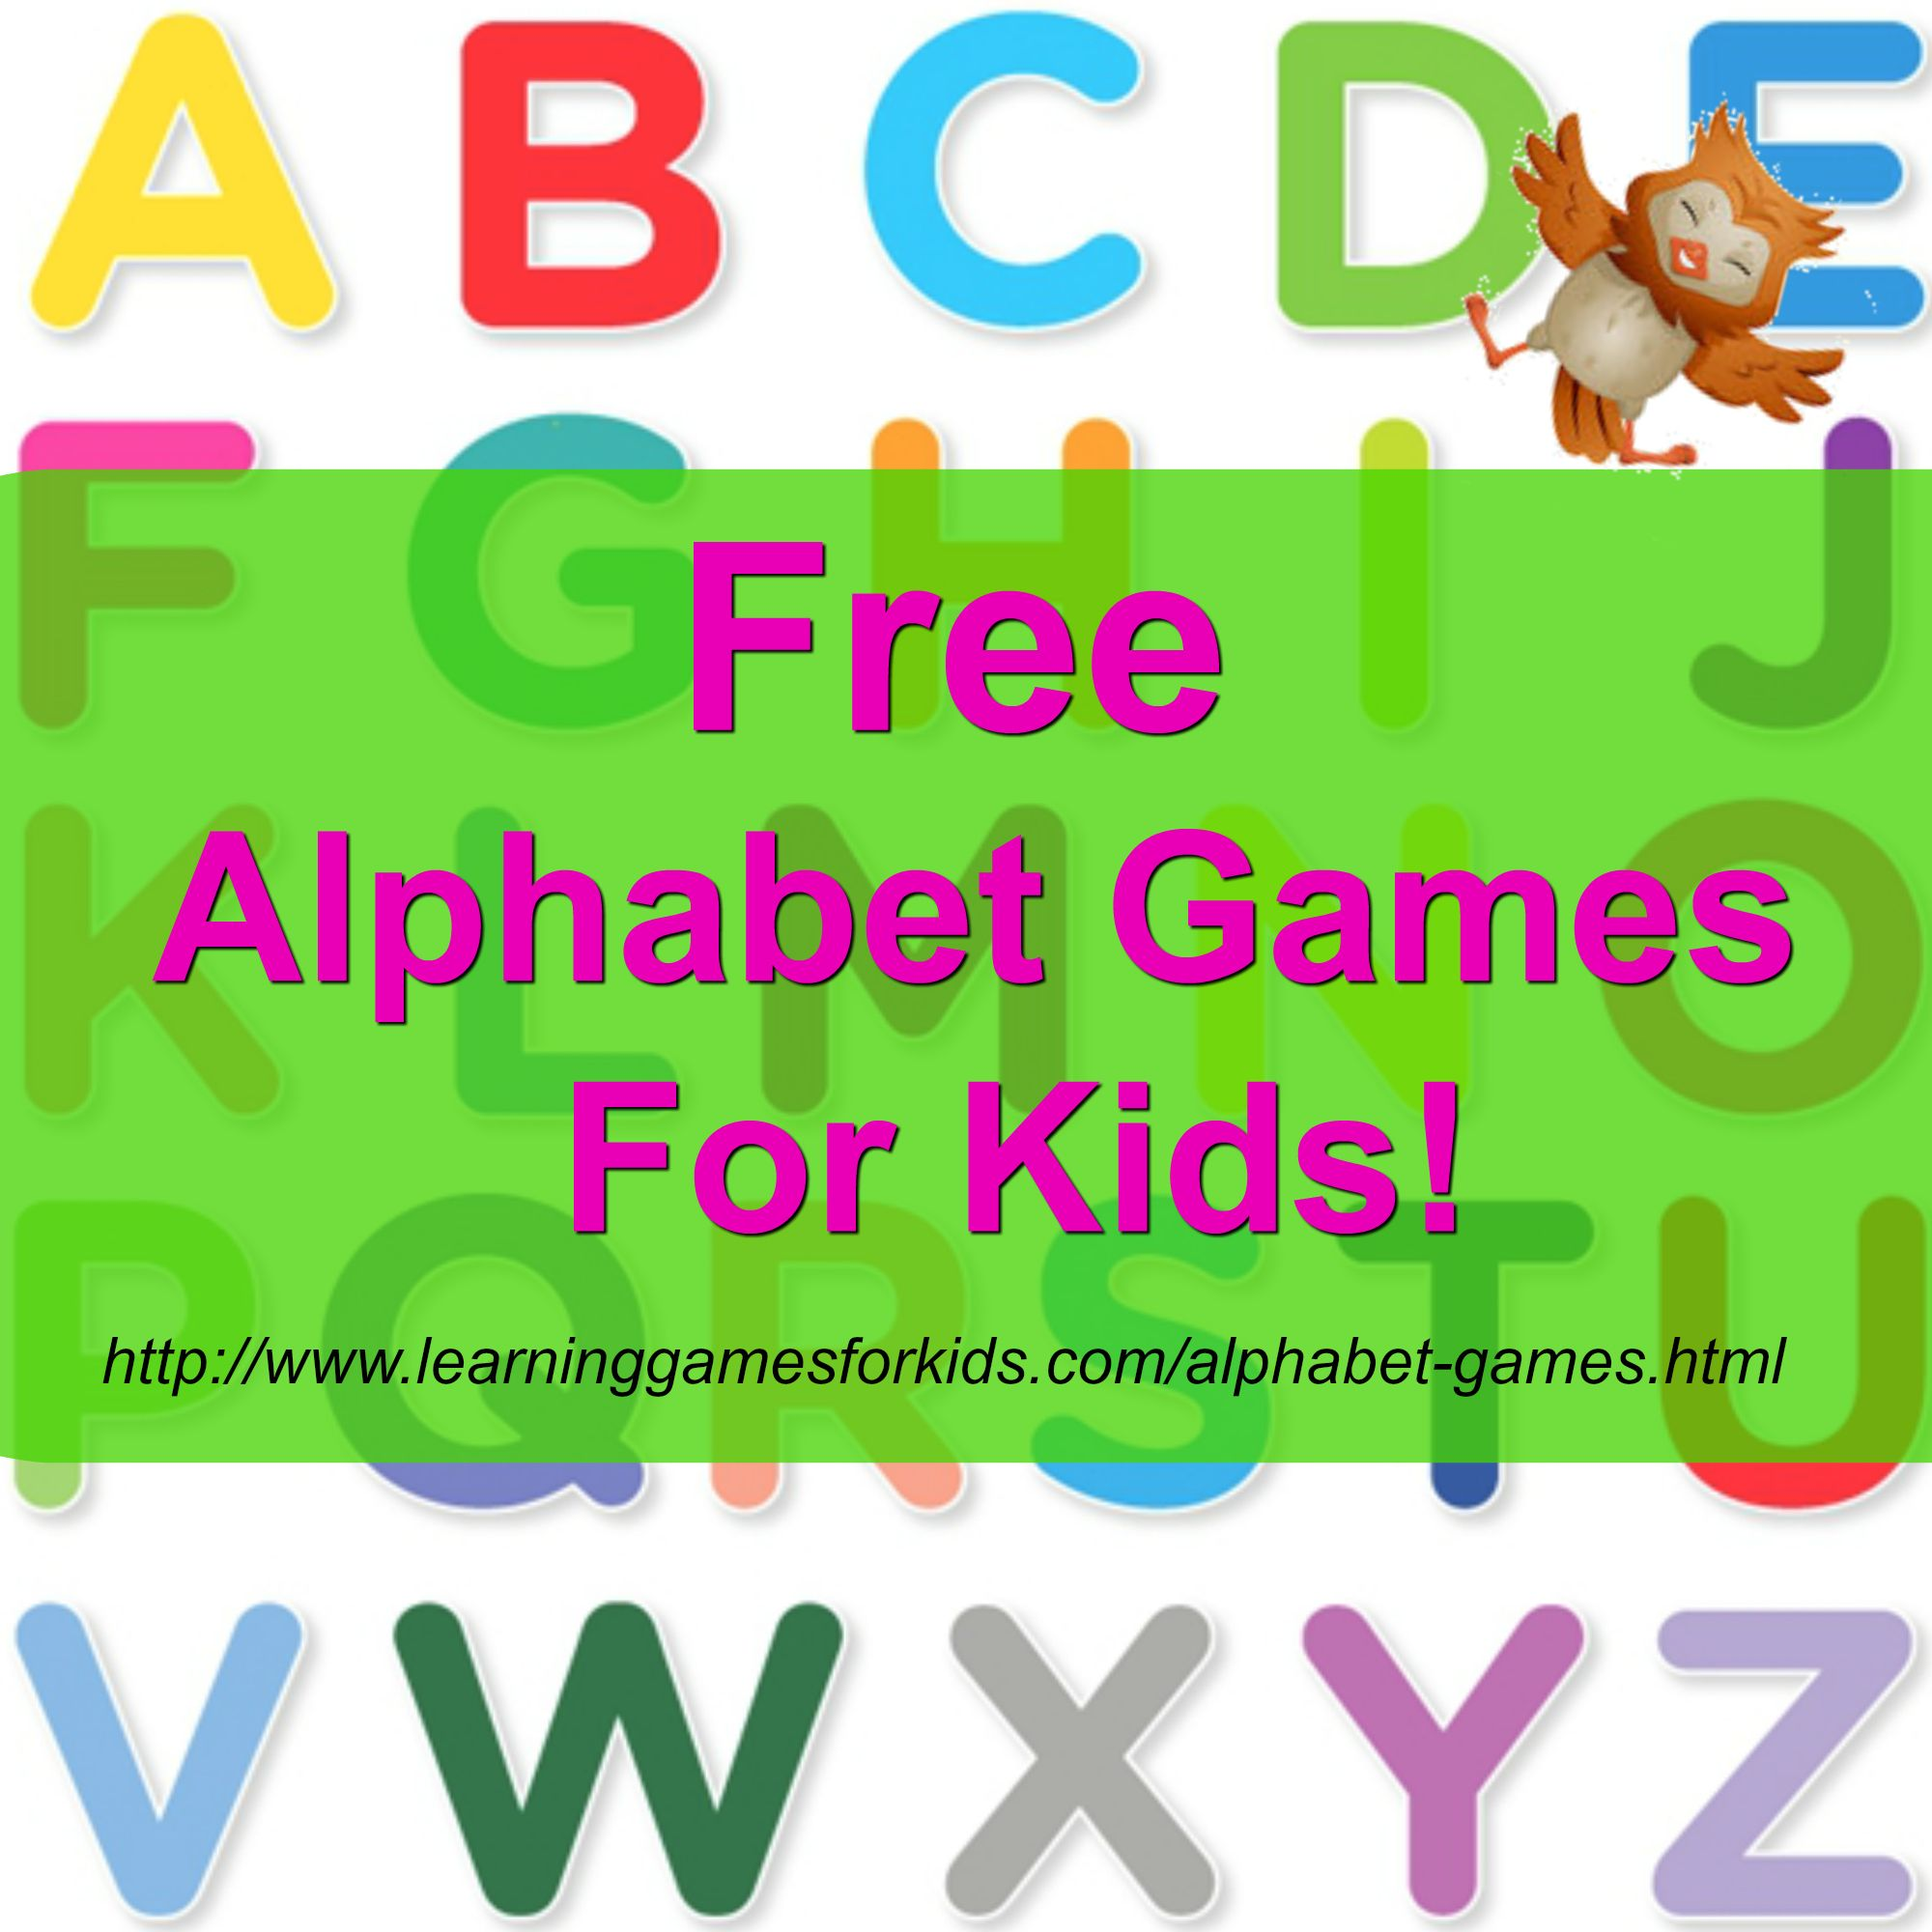 These free games are a fun way to help kids learn their